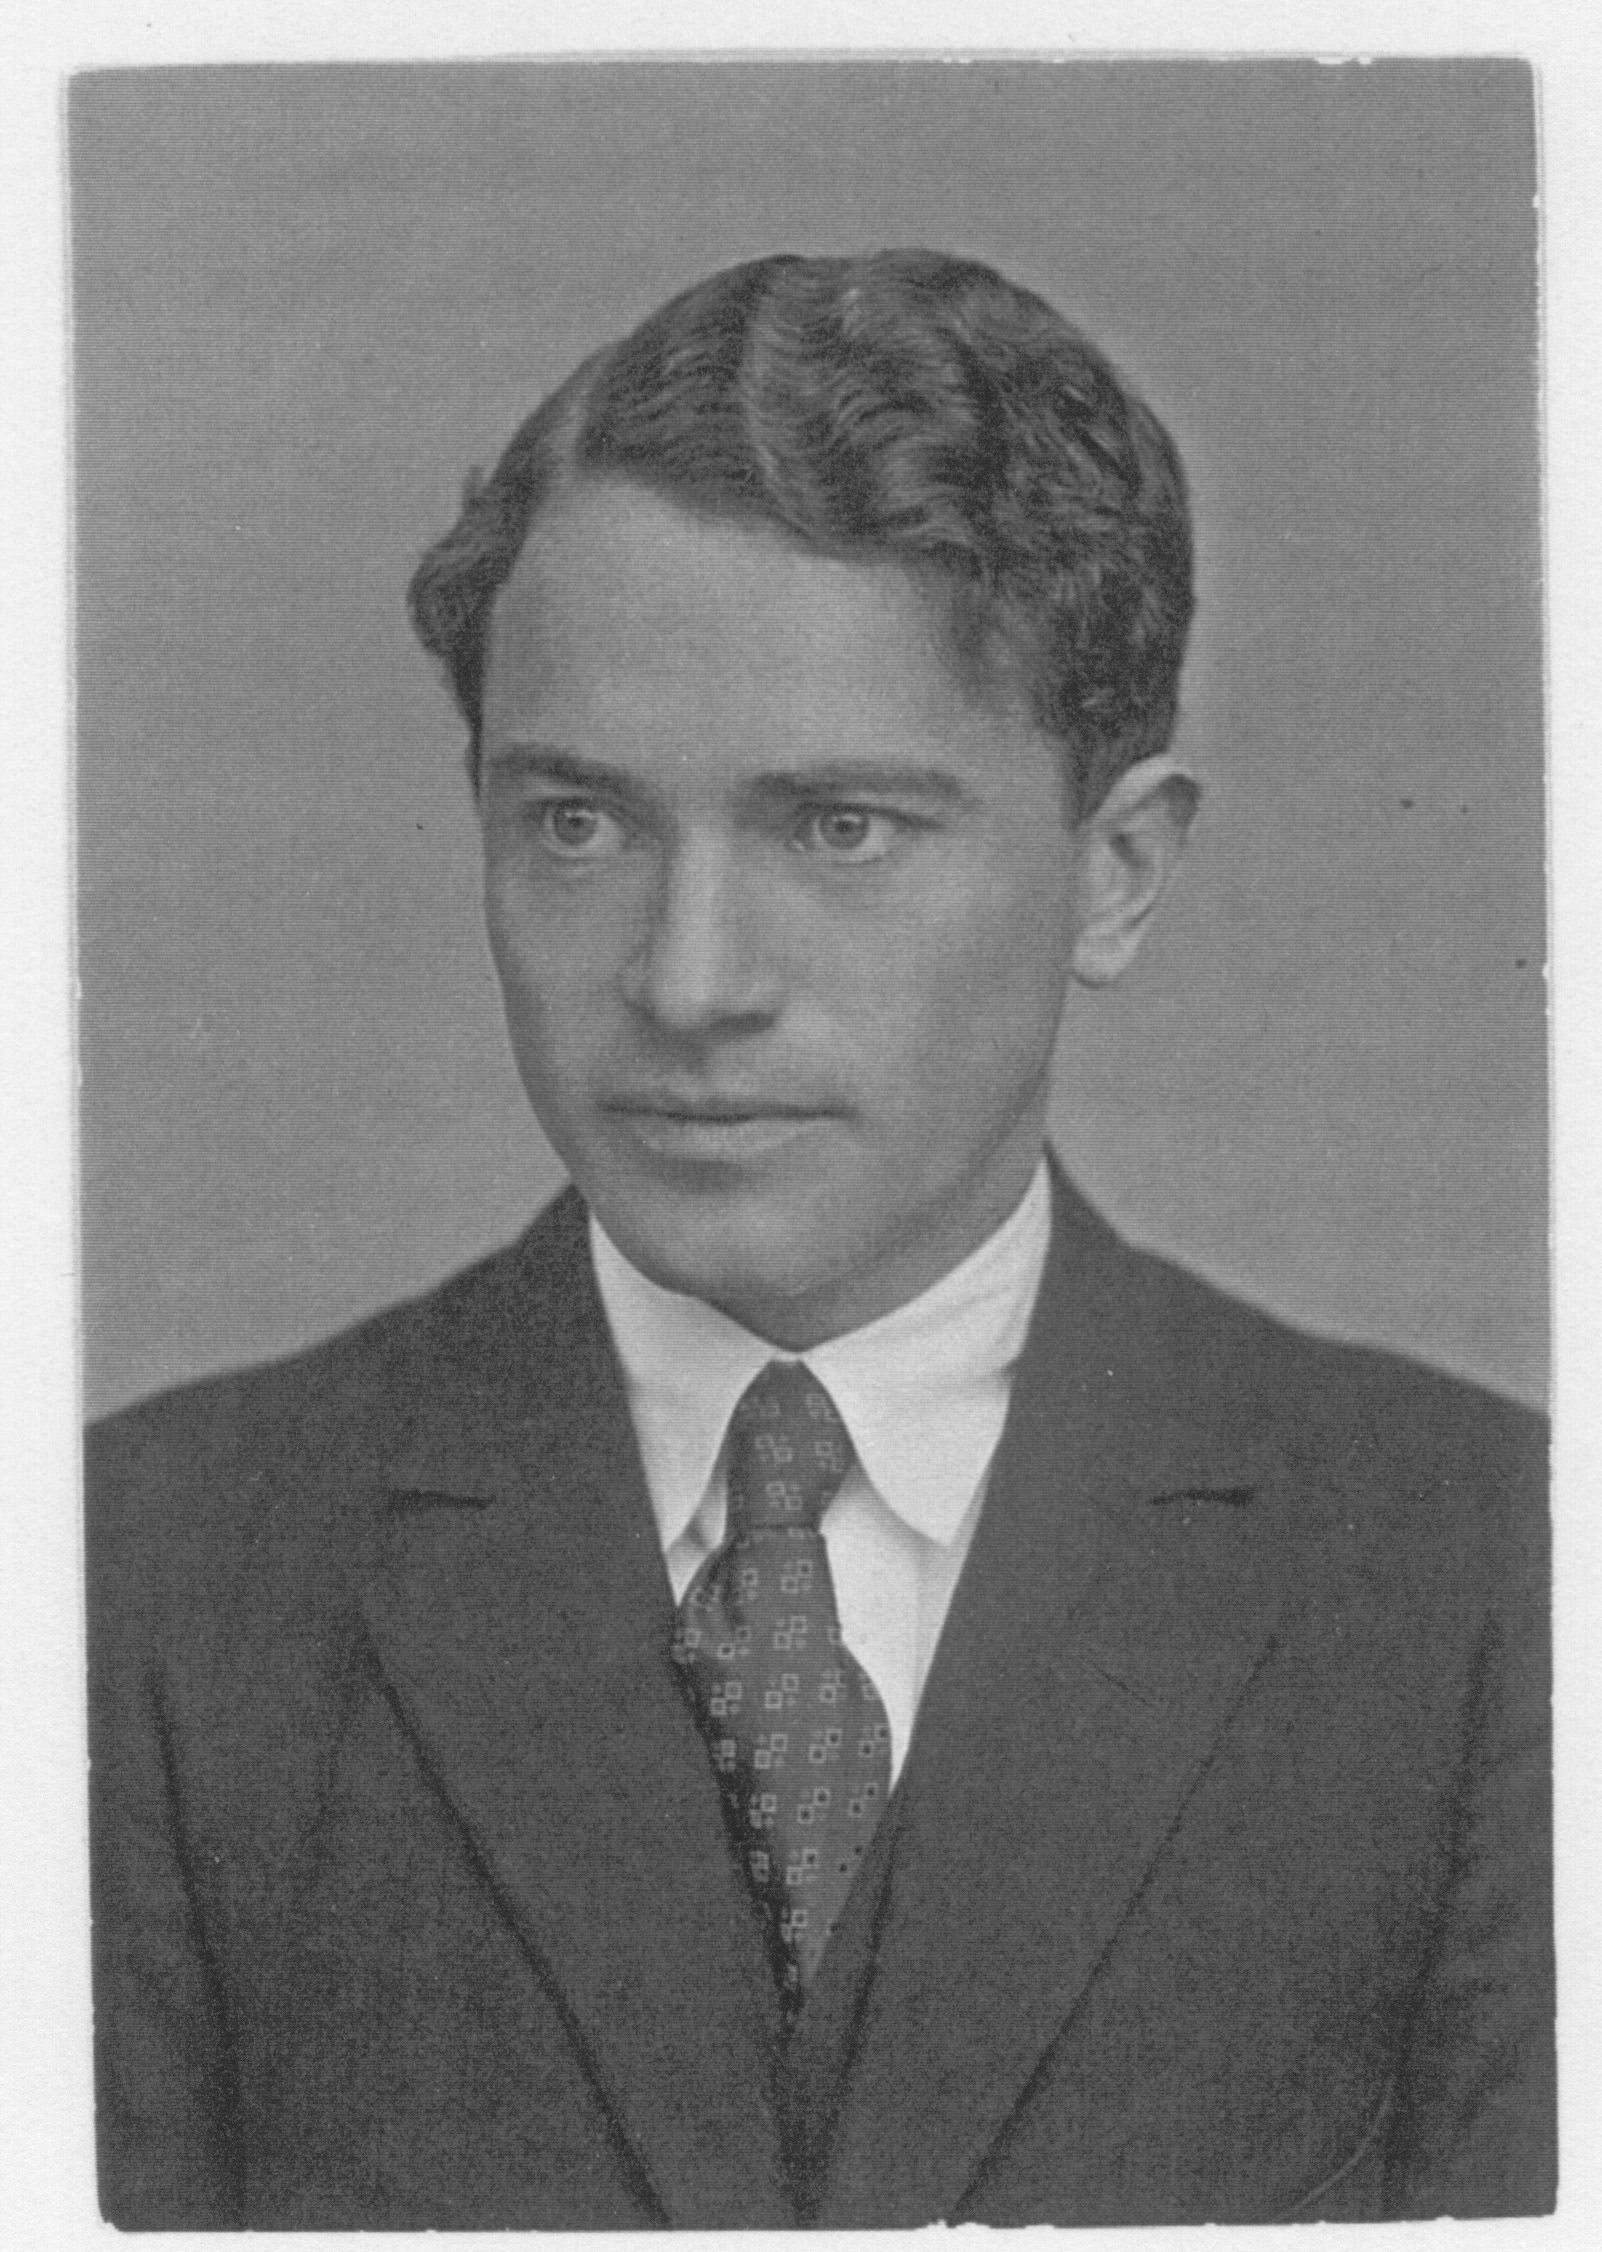 Sven S. Liljeblad (ca. 1927), a student of C.W. von Sydow, wrote his dissertation on the Grateful Dead. © RM James private collection